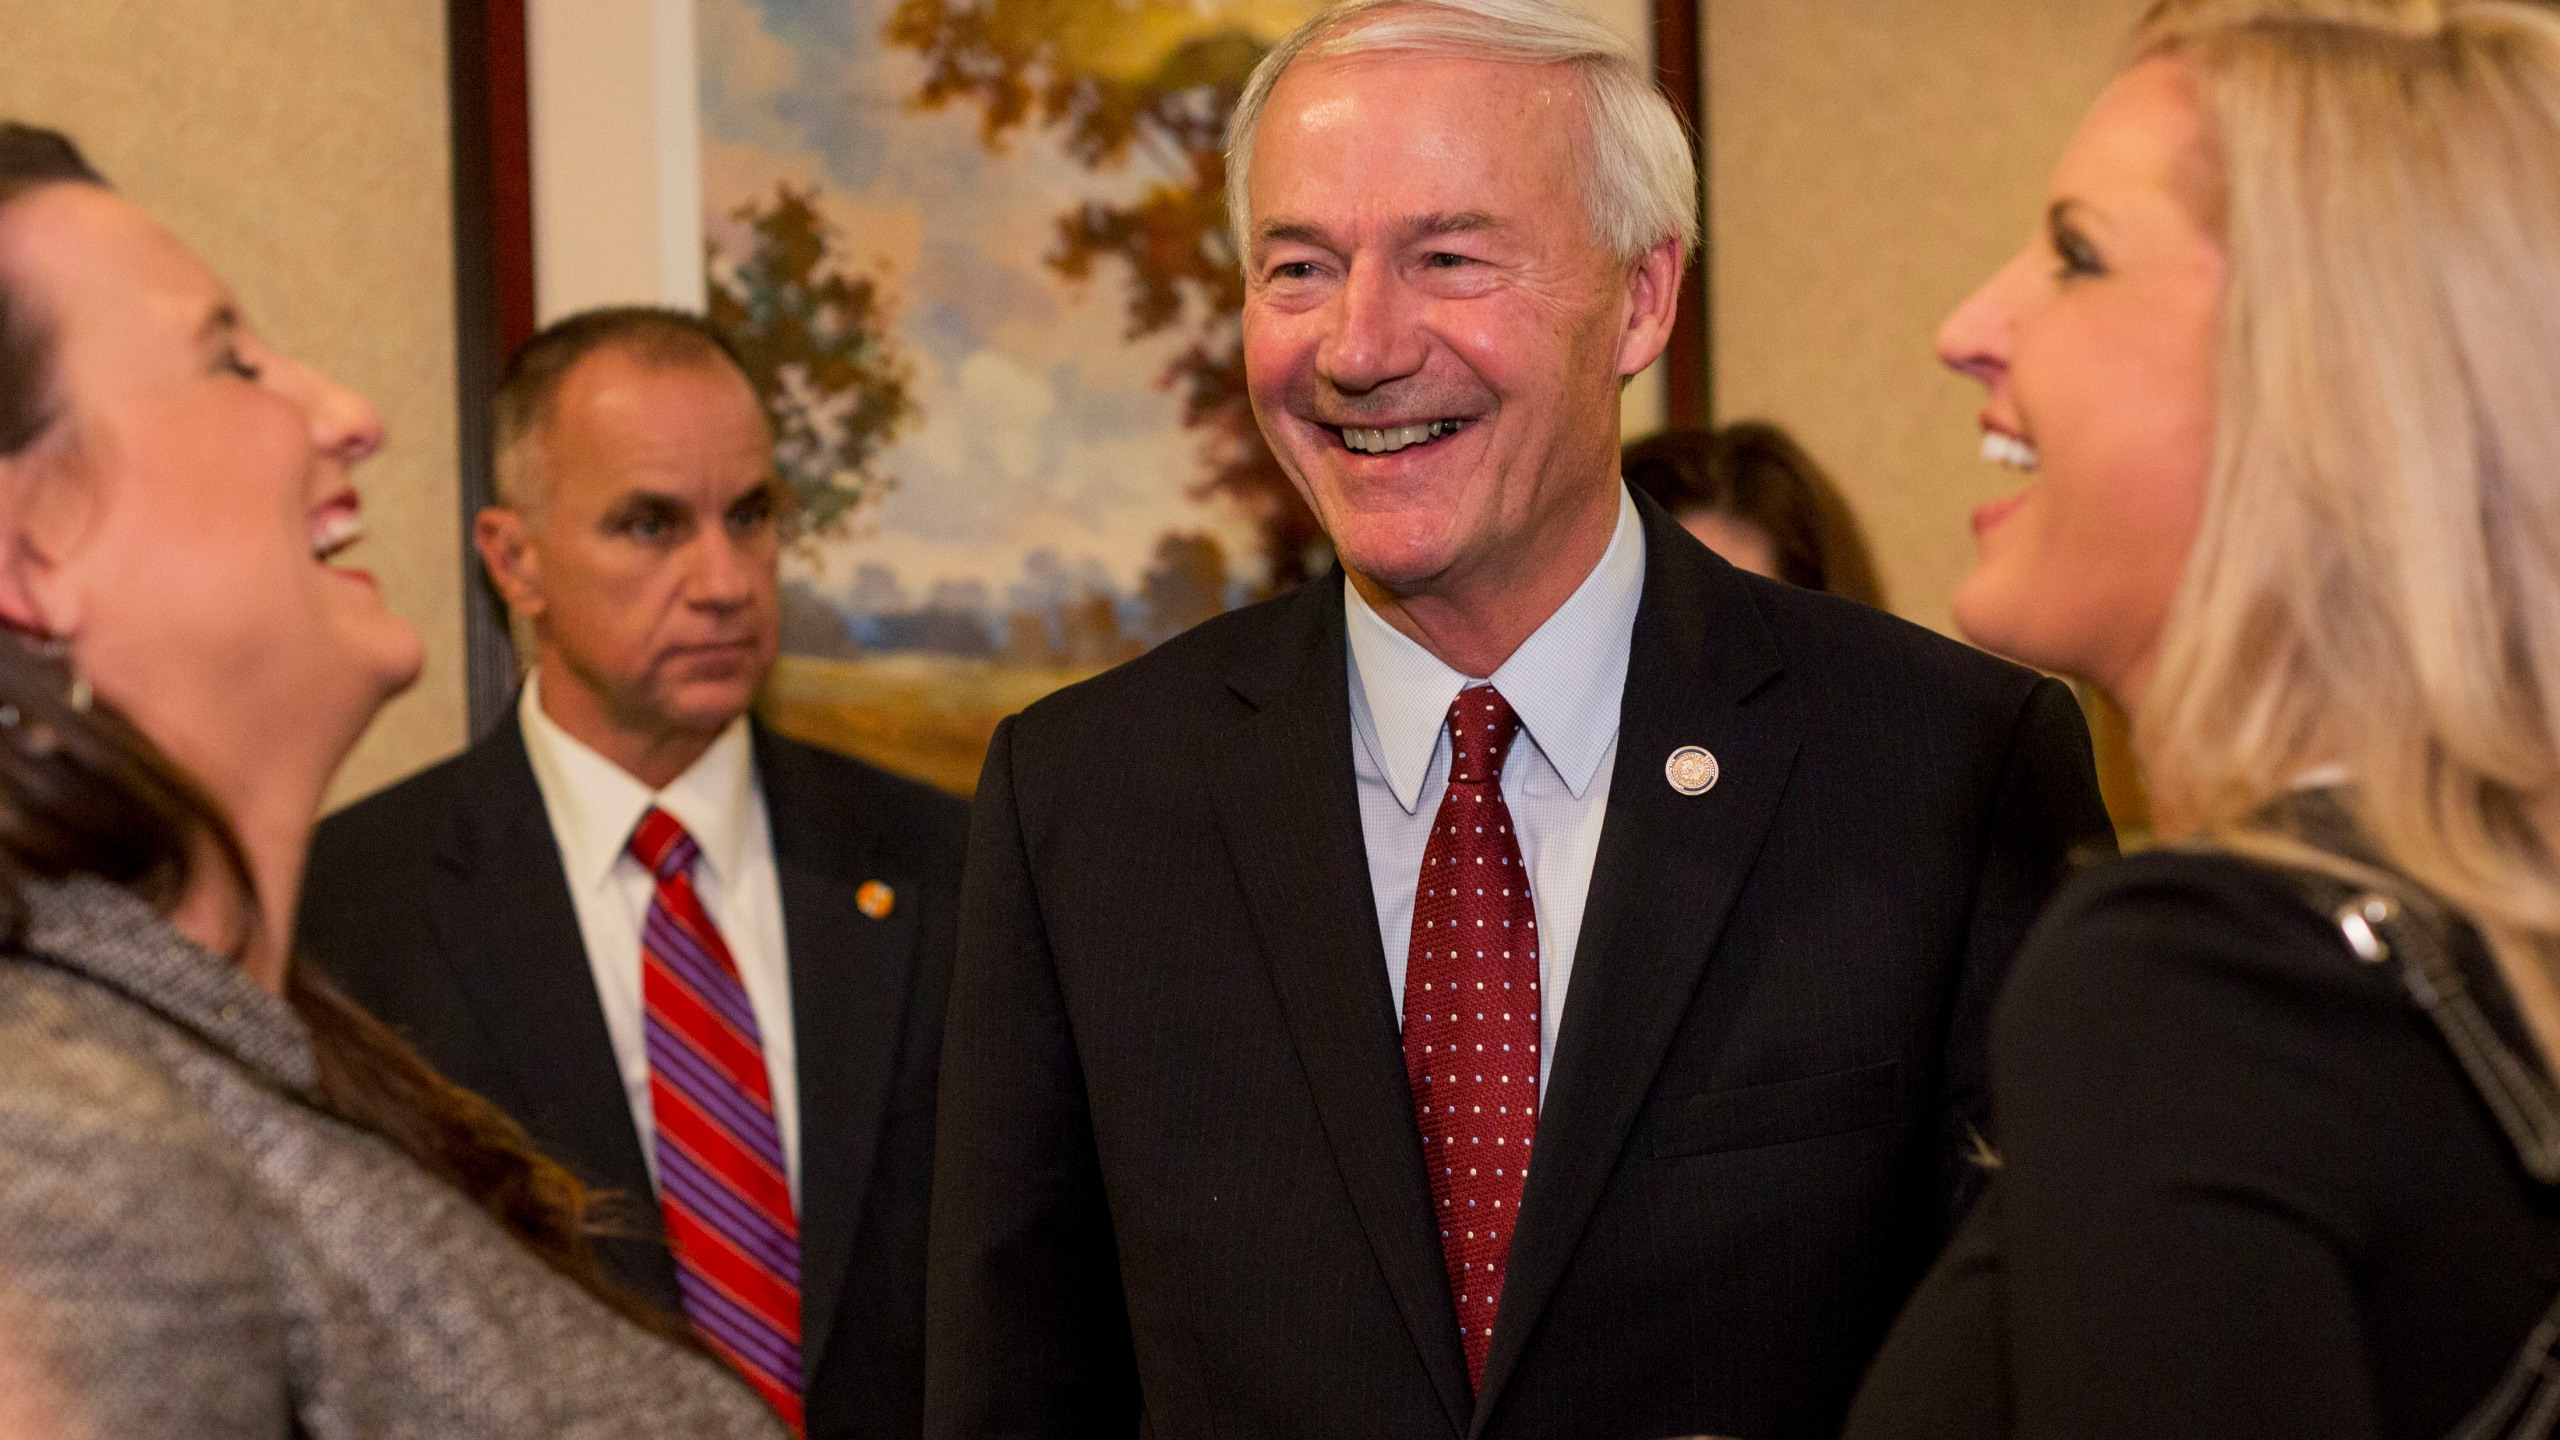 Election_2018_Governor_Hutchinson_Arkansas_67750-159532.jpg87633968